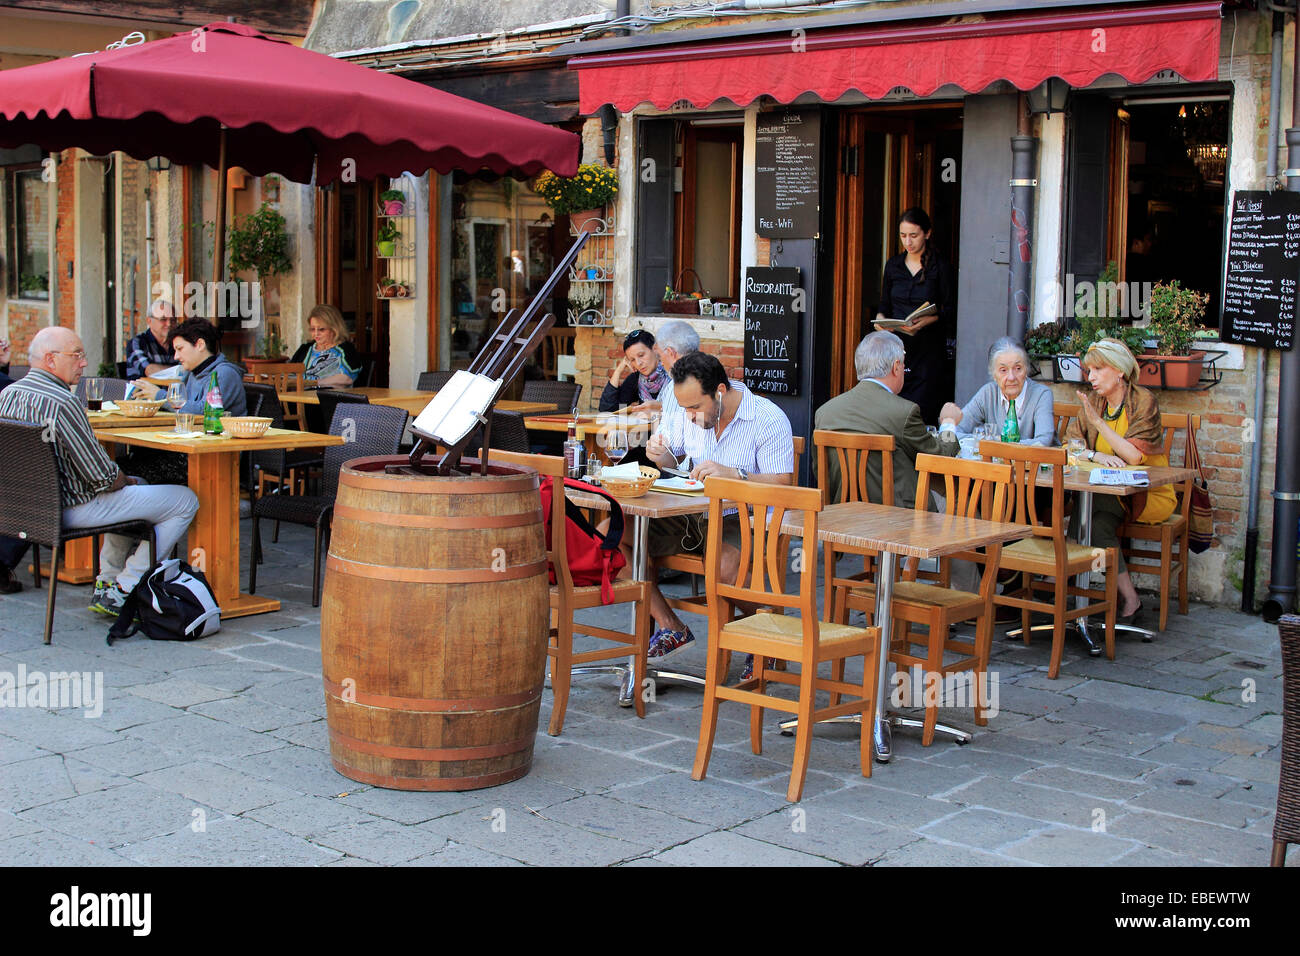 Ristorante Cucina Kosher Padova Italy Restaurant Couple Stock Photos Italy Restaurant Couple